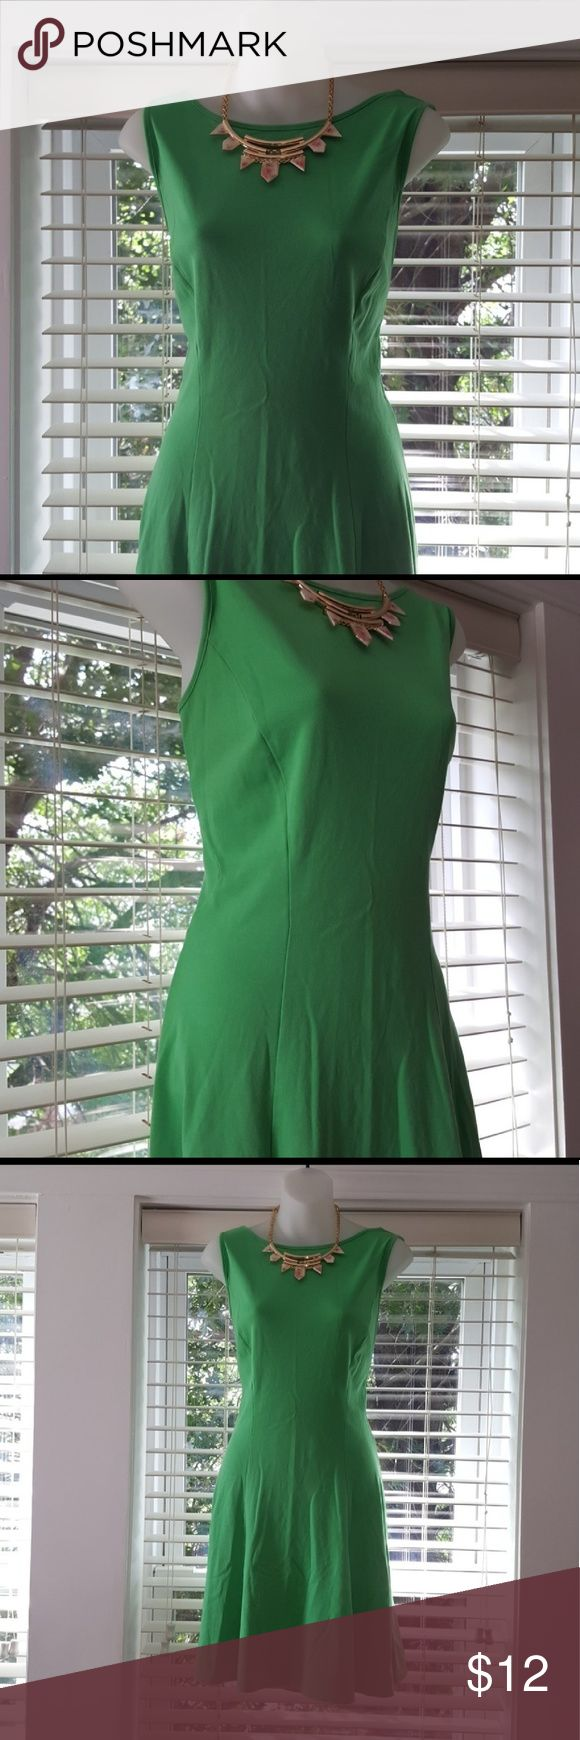 Kelly green dress Only worn a couple times & in great condition! New York & Company Dresses Midi